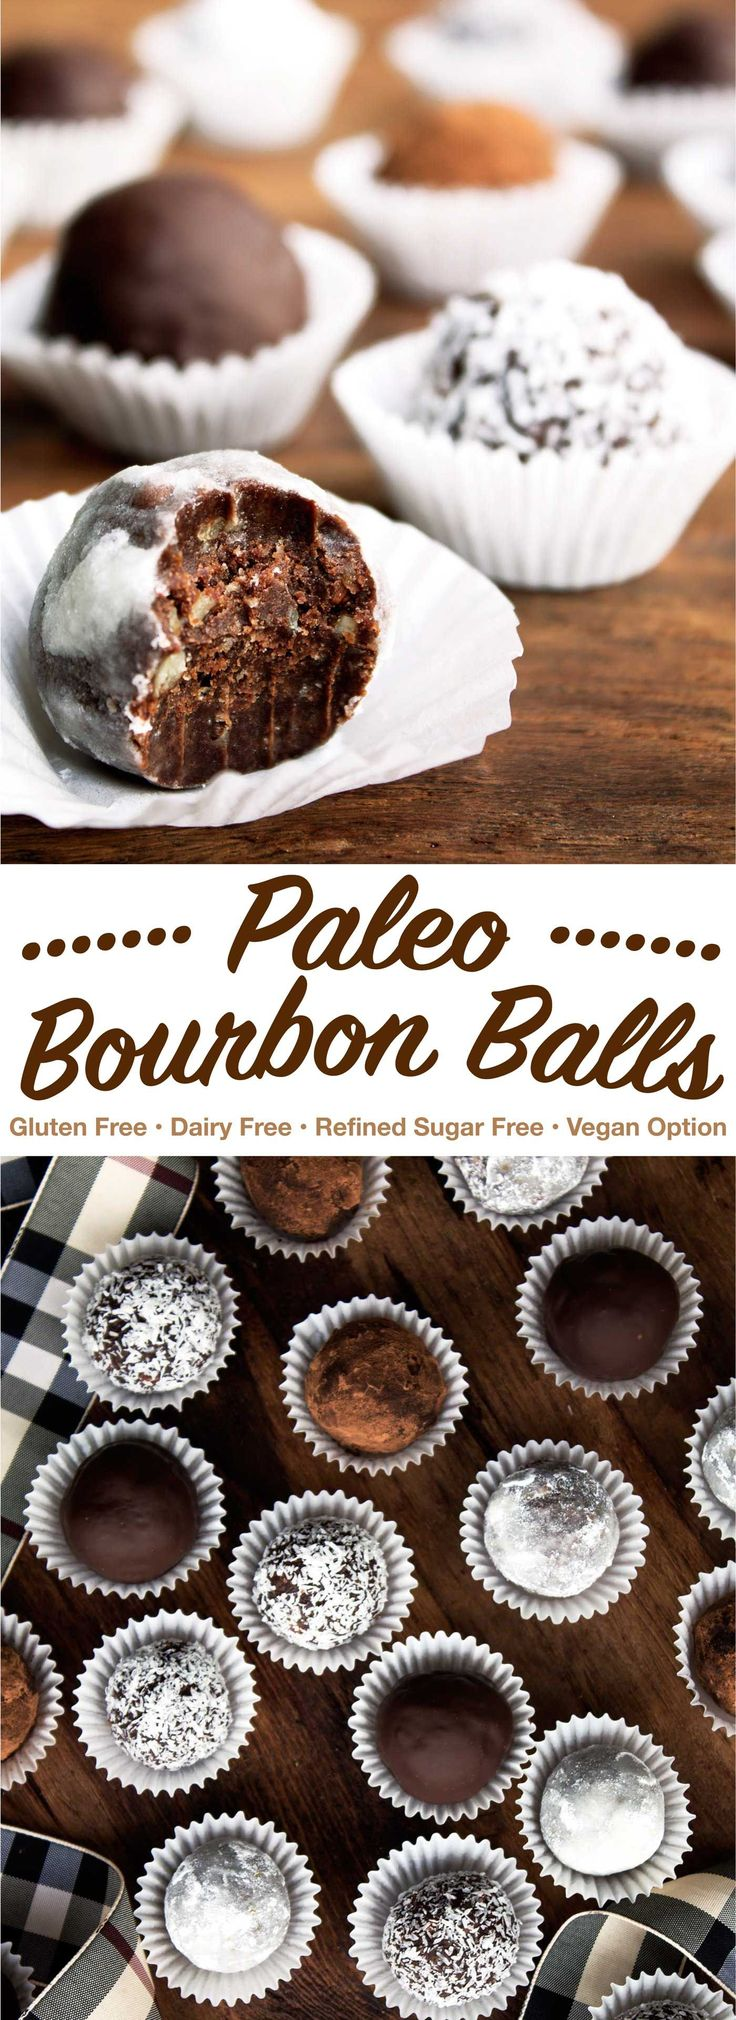 Bourbon balls are hands down my favorite Christmas cookie. Bourbon balls are asouthern delicacy and an old family favorite. No holiday season is complete without at least one batch of these boozy little balls of deliciousness. You need these in your life.  I've been making bourbon ballssince I was a kid. Our old family...Read More »